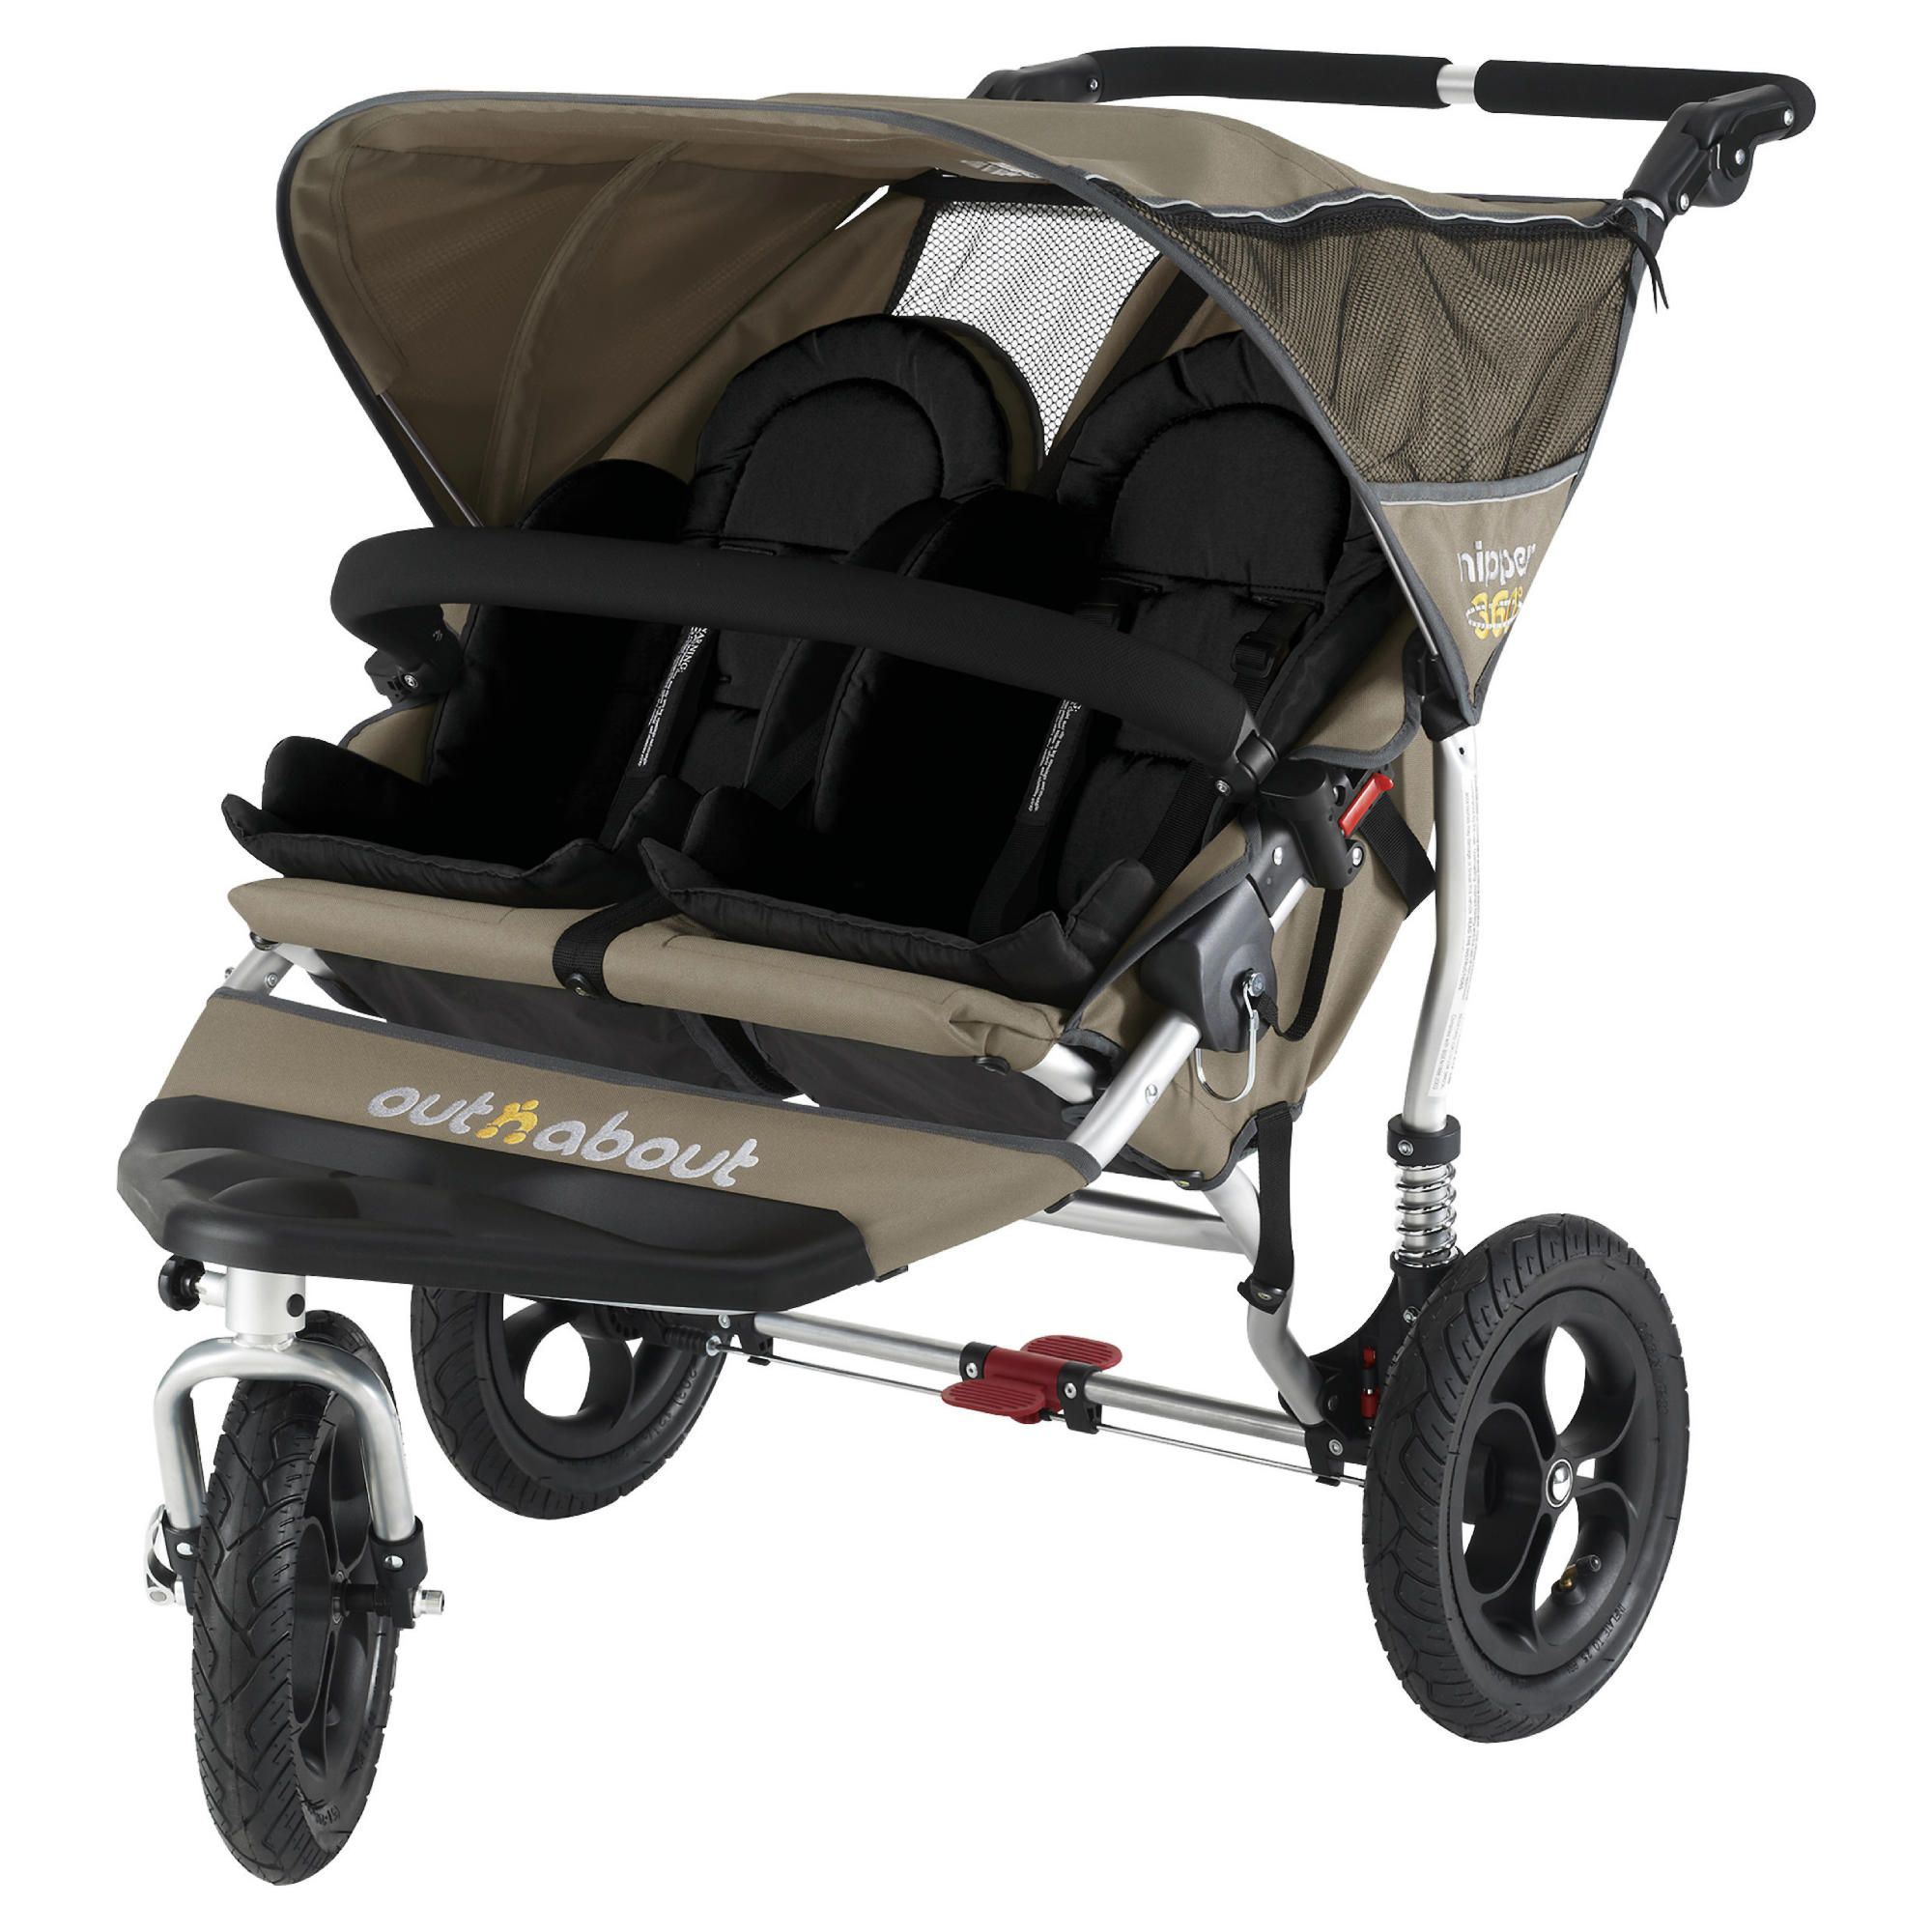 Out 'n' About V2 Nipper 360, Double 3 wheeler Pushchair, Carmel at Tesco Direct